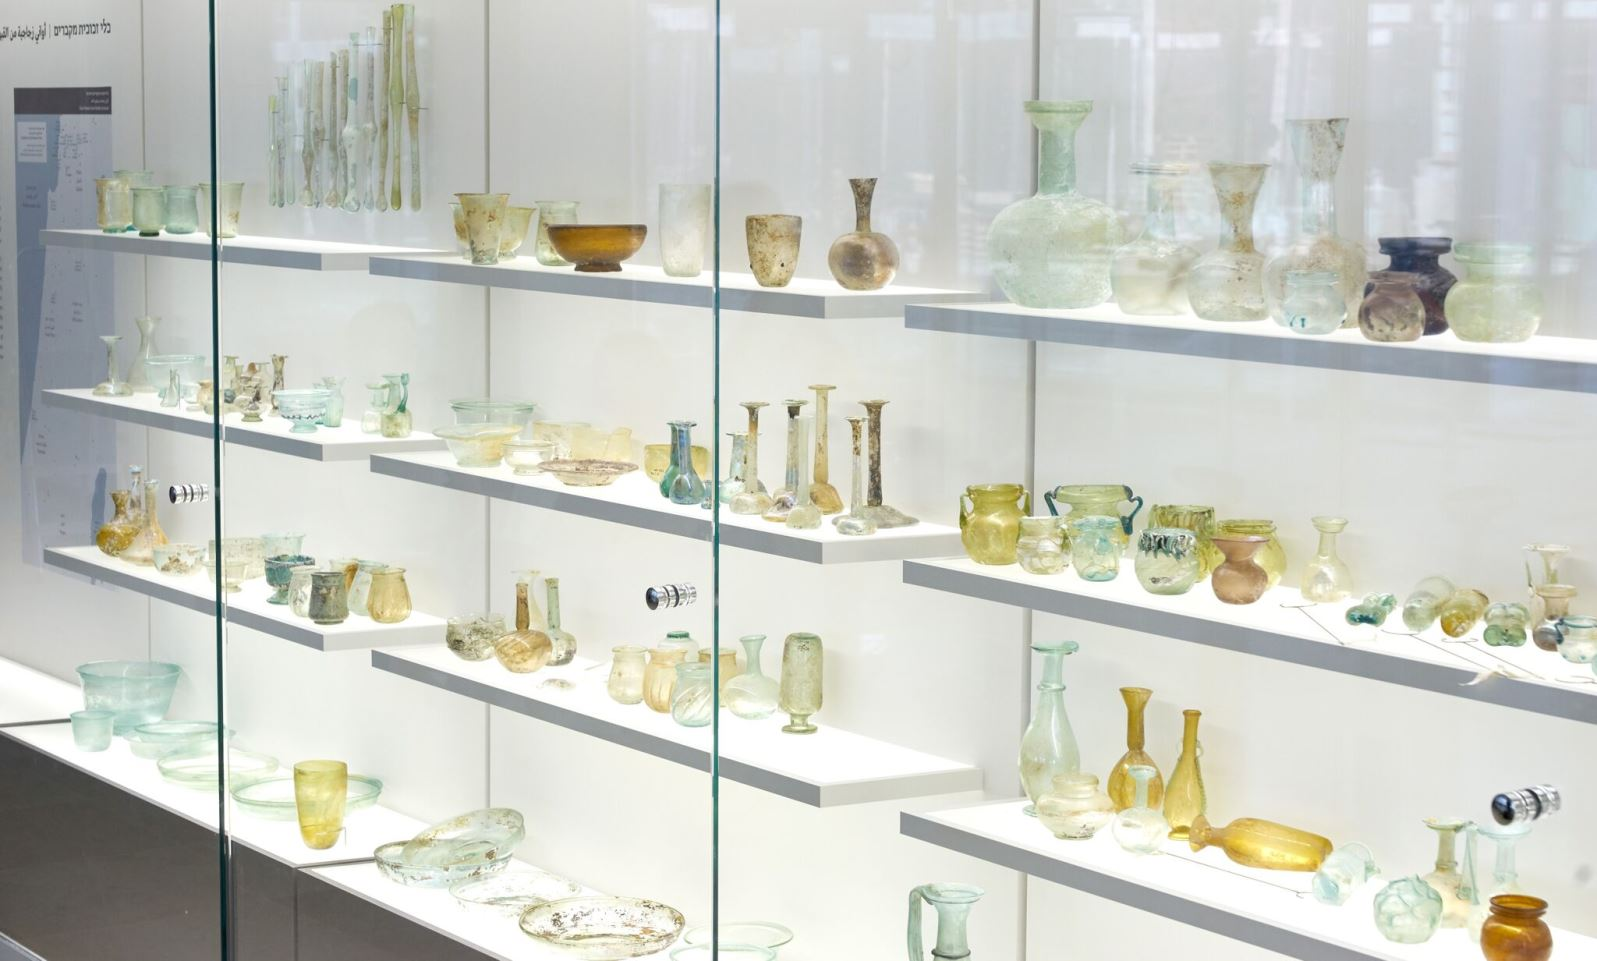 Roman and Byzantine glass in an exhibition showing discoveries as well as ancient furnaces and raw materials used in the producing glass. Photo by Ardon Bar-Hama